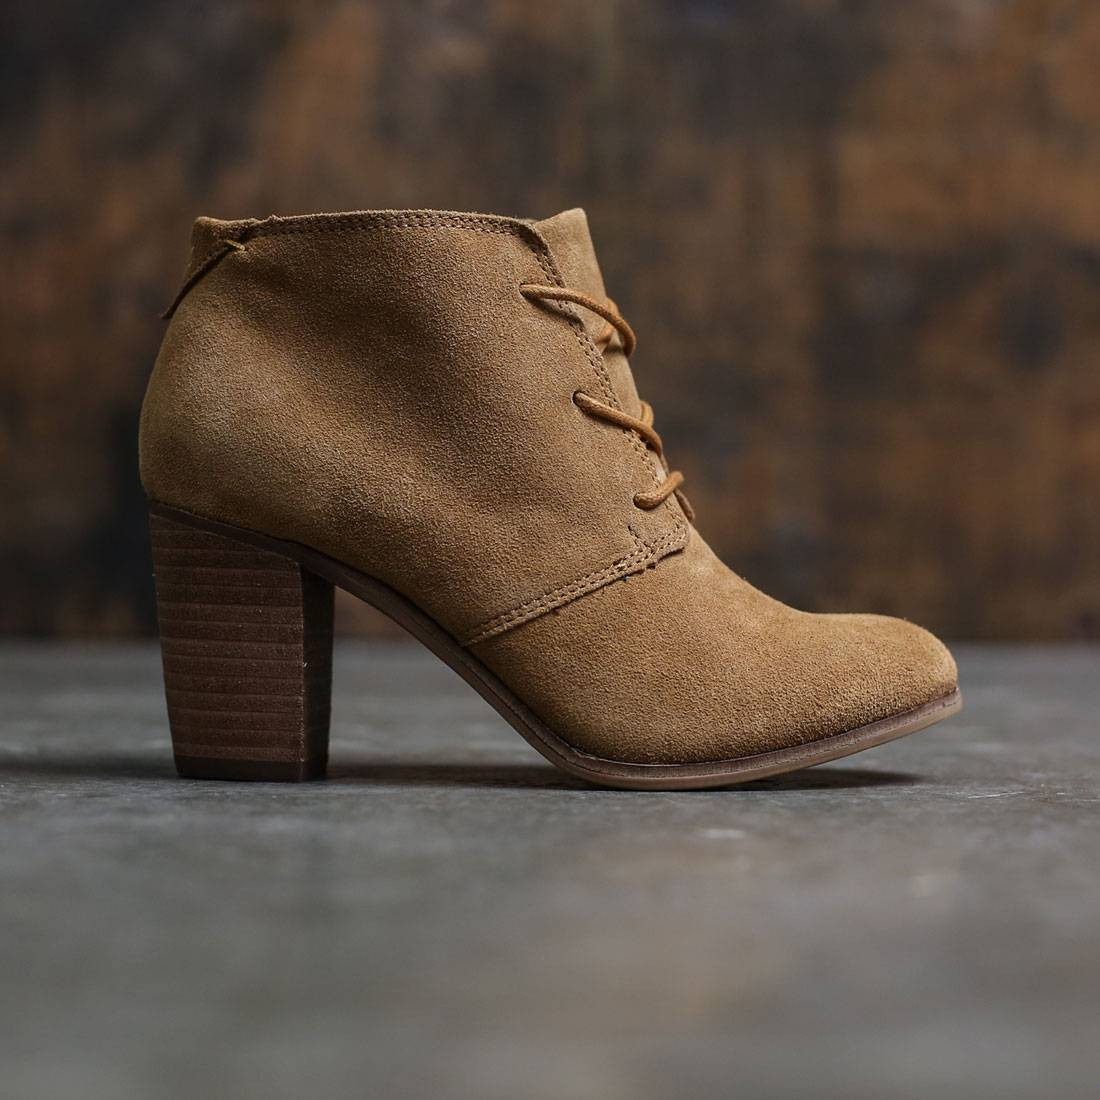 06b557032a8 TOMS Women Lunata Lace Up Bootie - Wheat Suede brown wheat suede